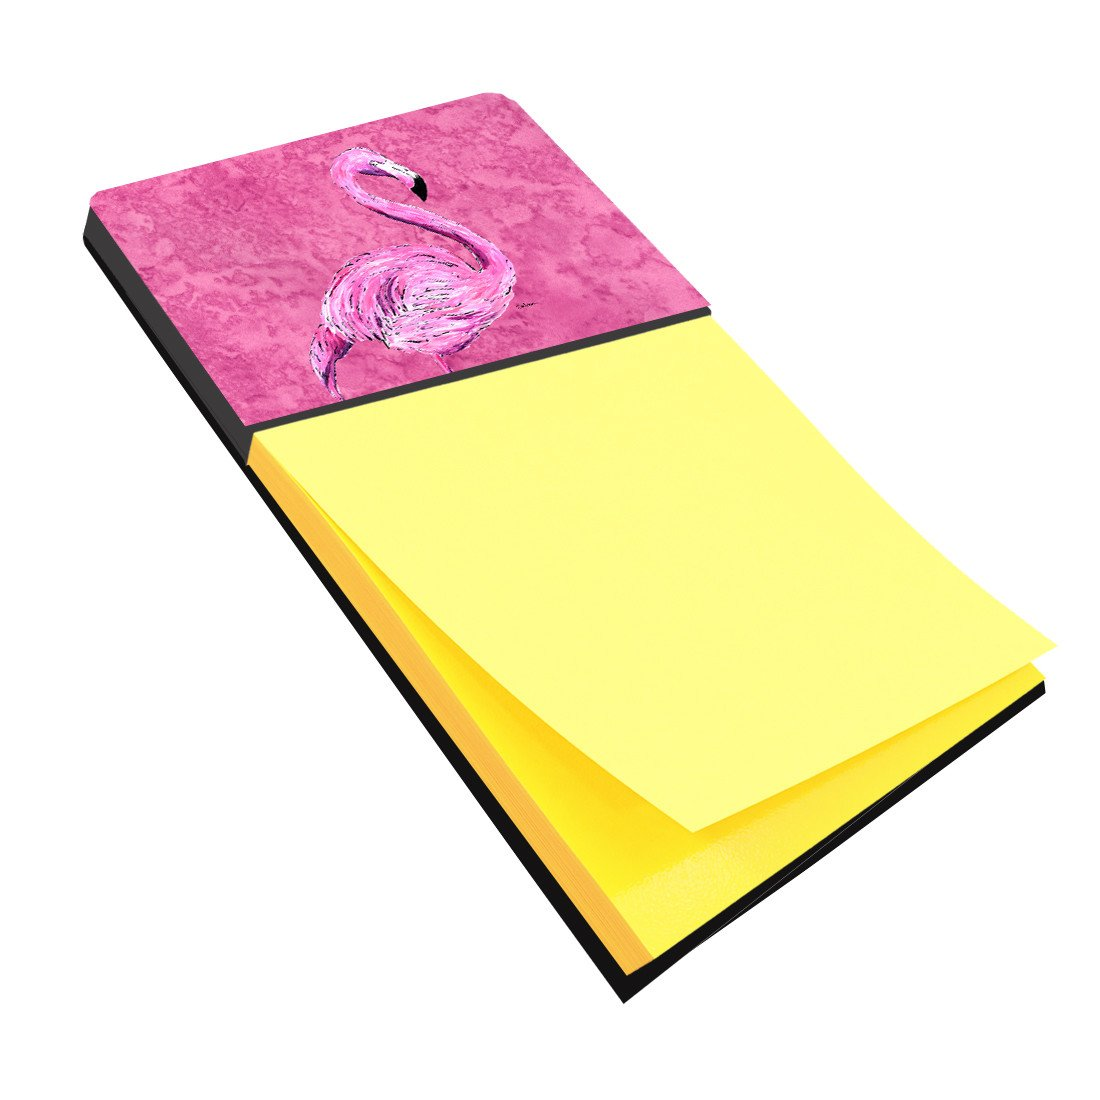 Flamingo on Pink Refiillable Sticky Note Holder or Postit Note Dispenser 8875SN by Caroline's Treasures